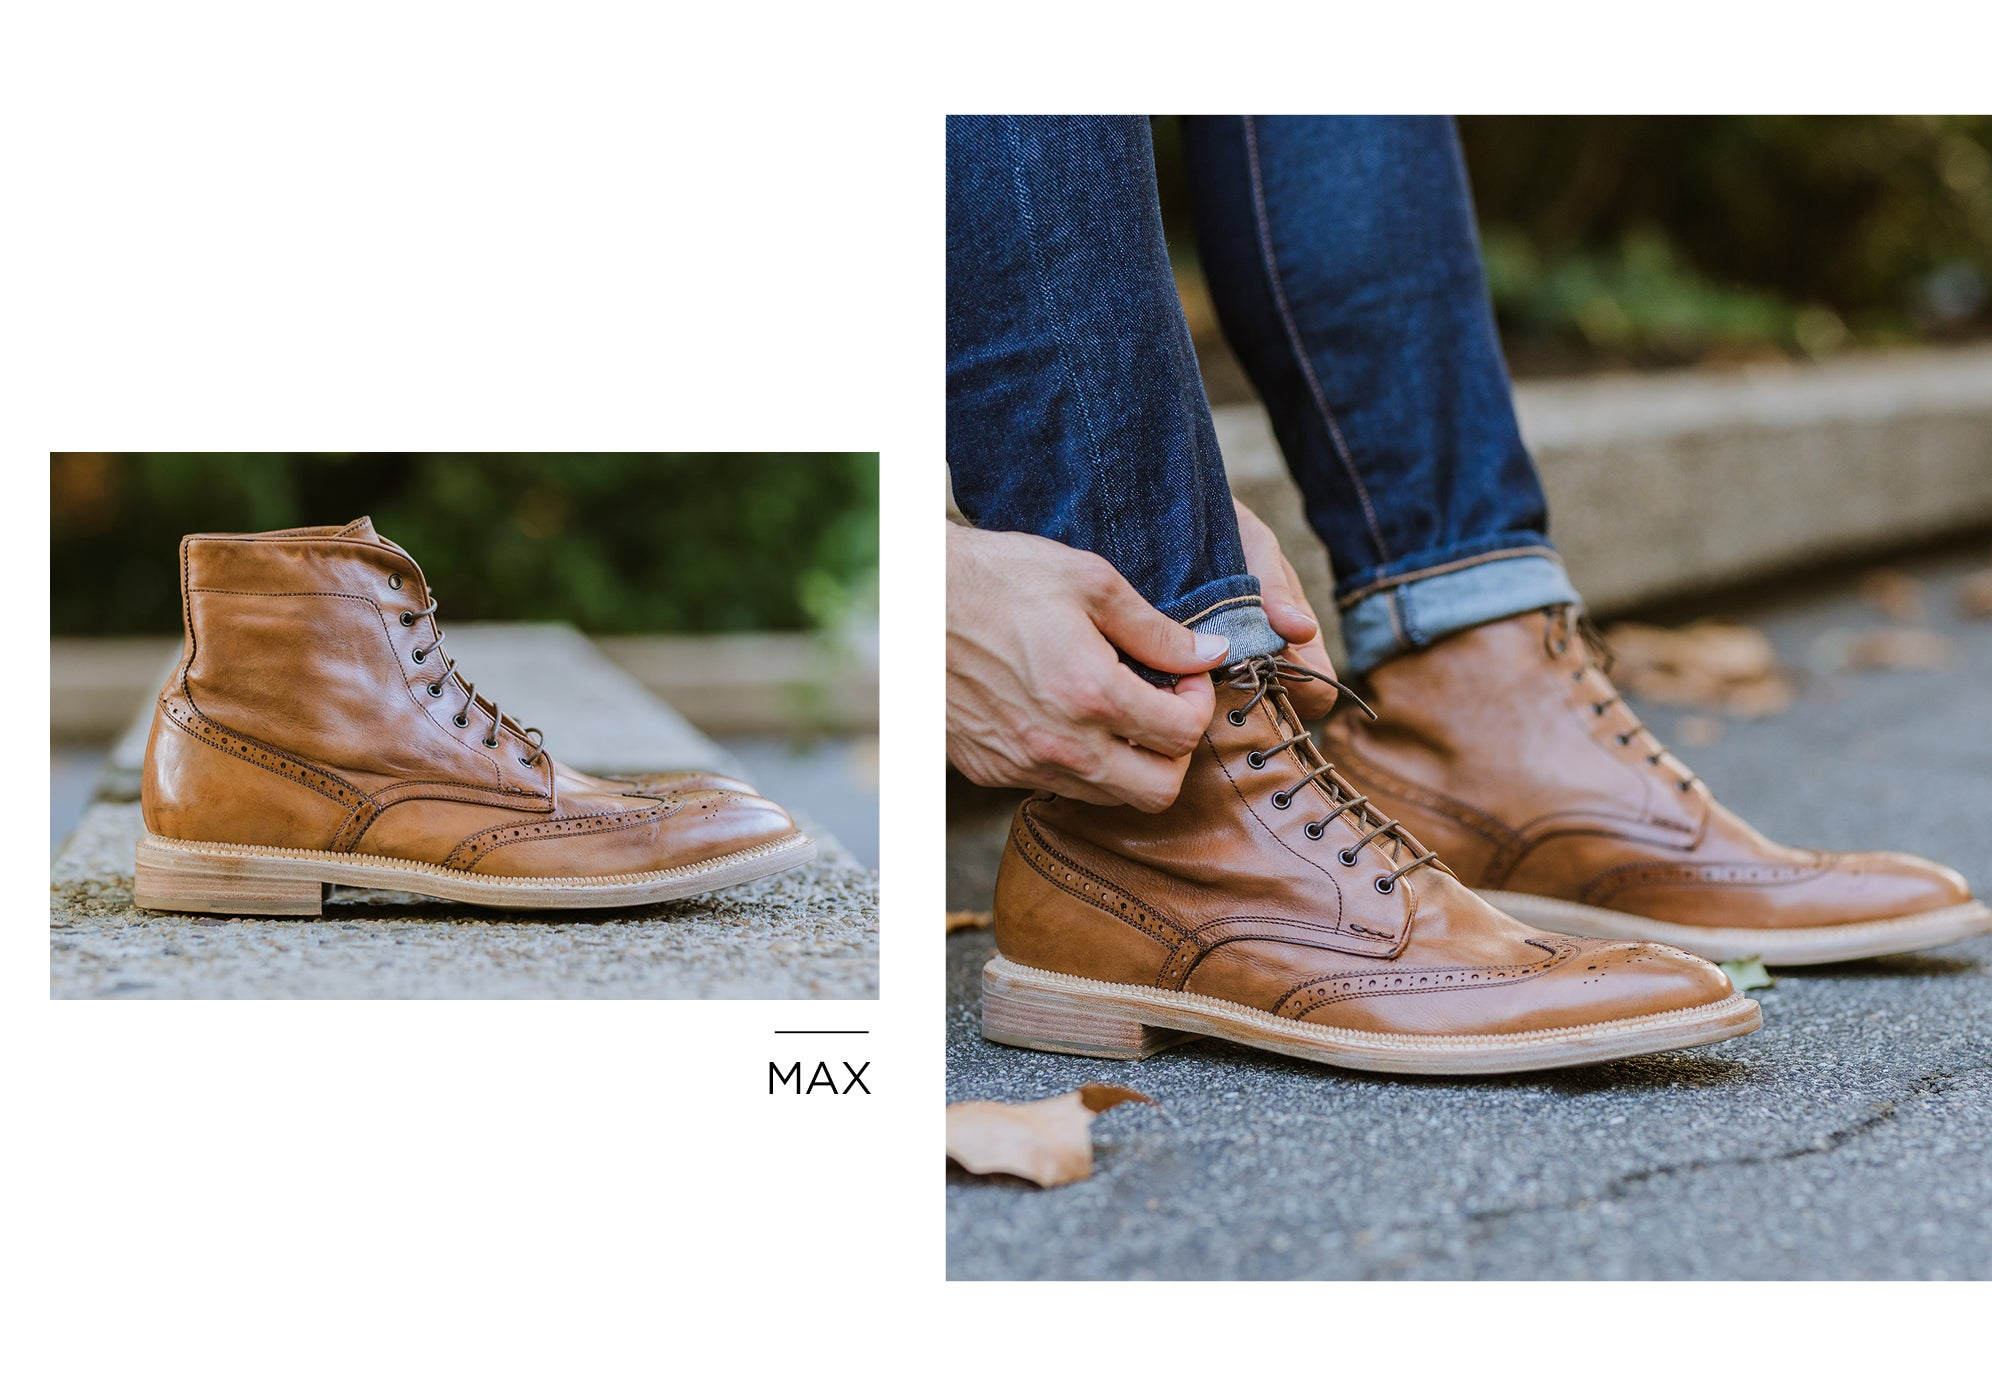 Max Wingtip Boot in Walnut by Gordon Rush